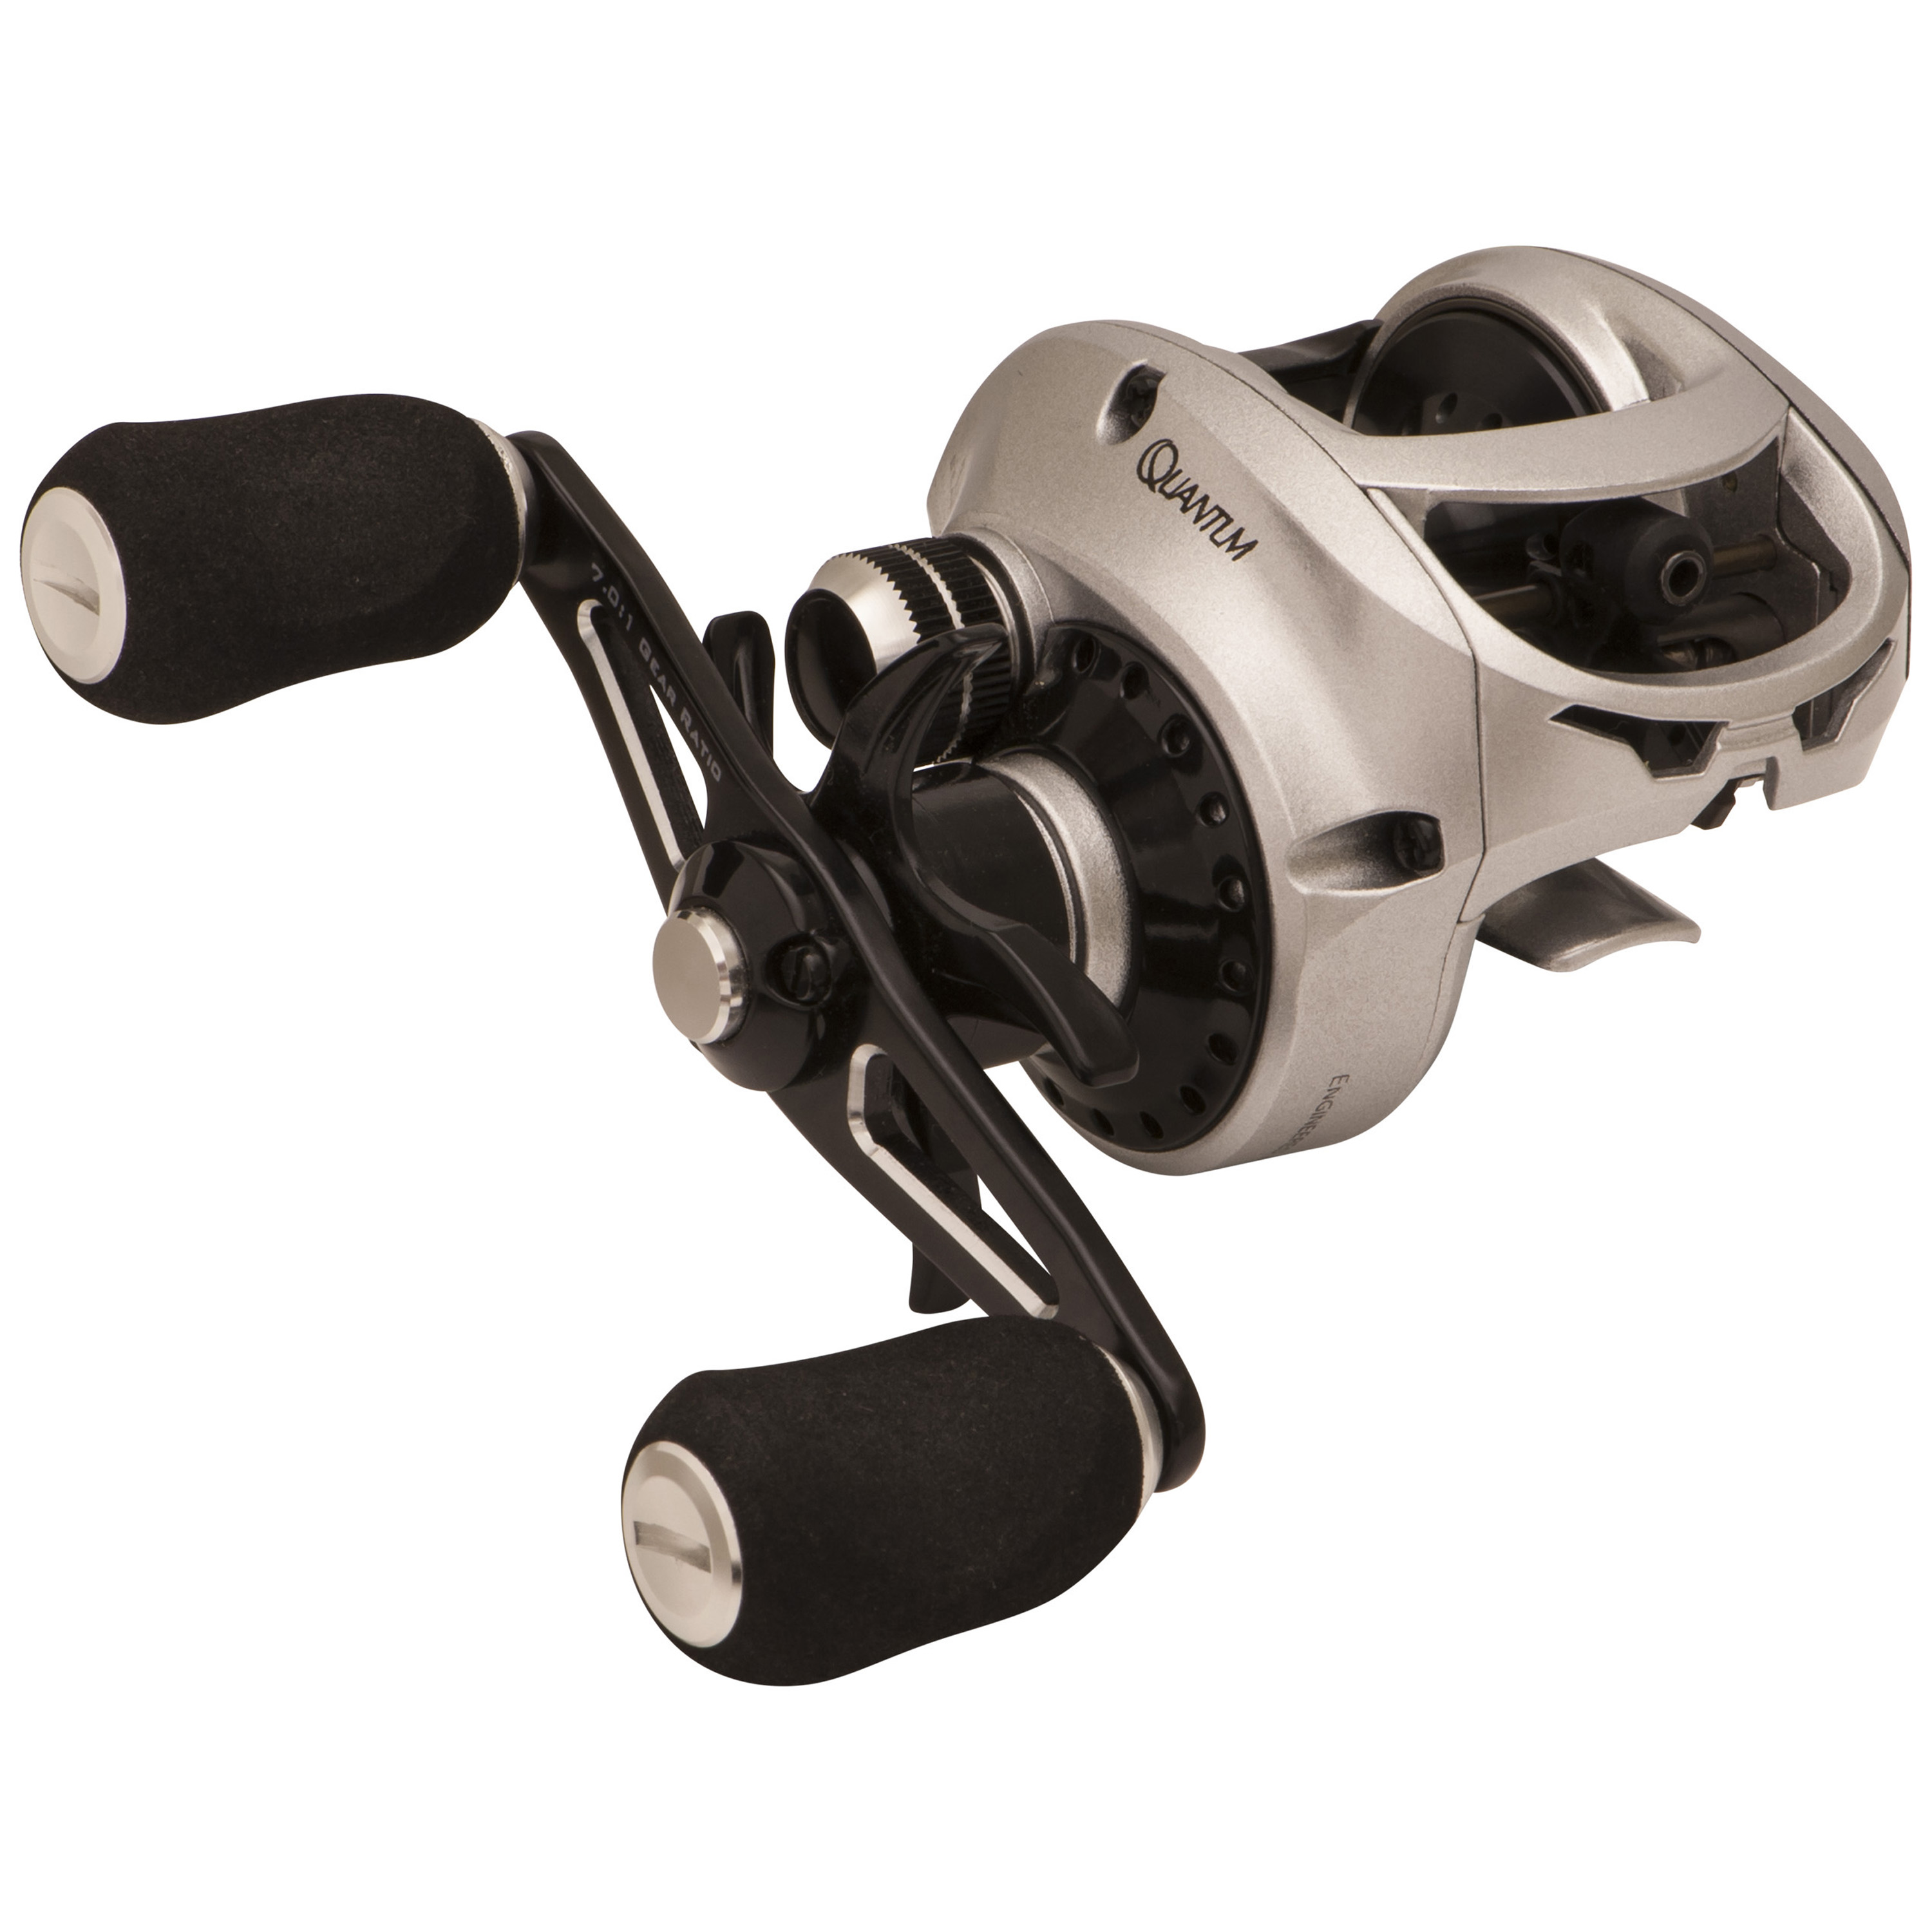 Quantum Icon PT Baitcast Reel 7.0:1 Gear Ratio, Right Hand